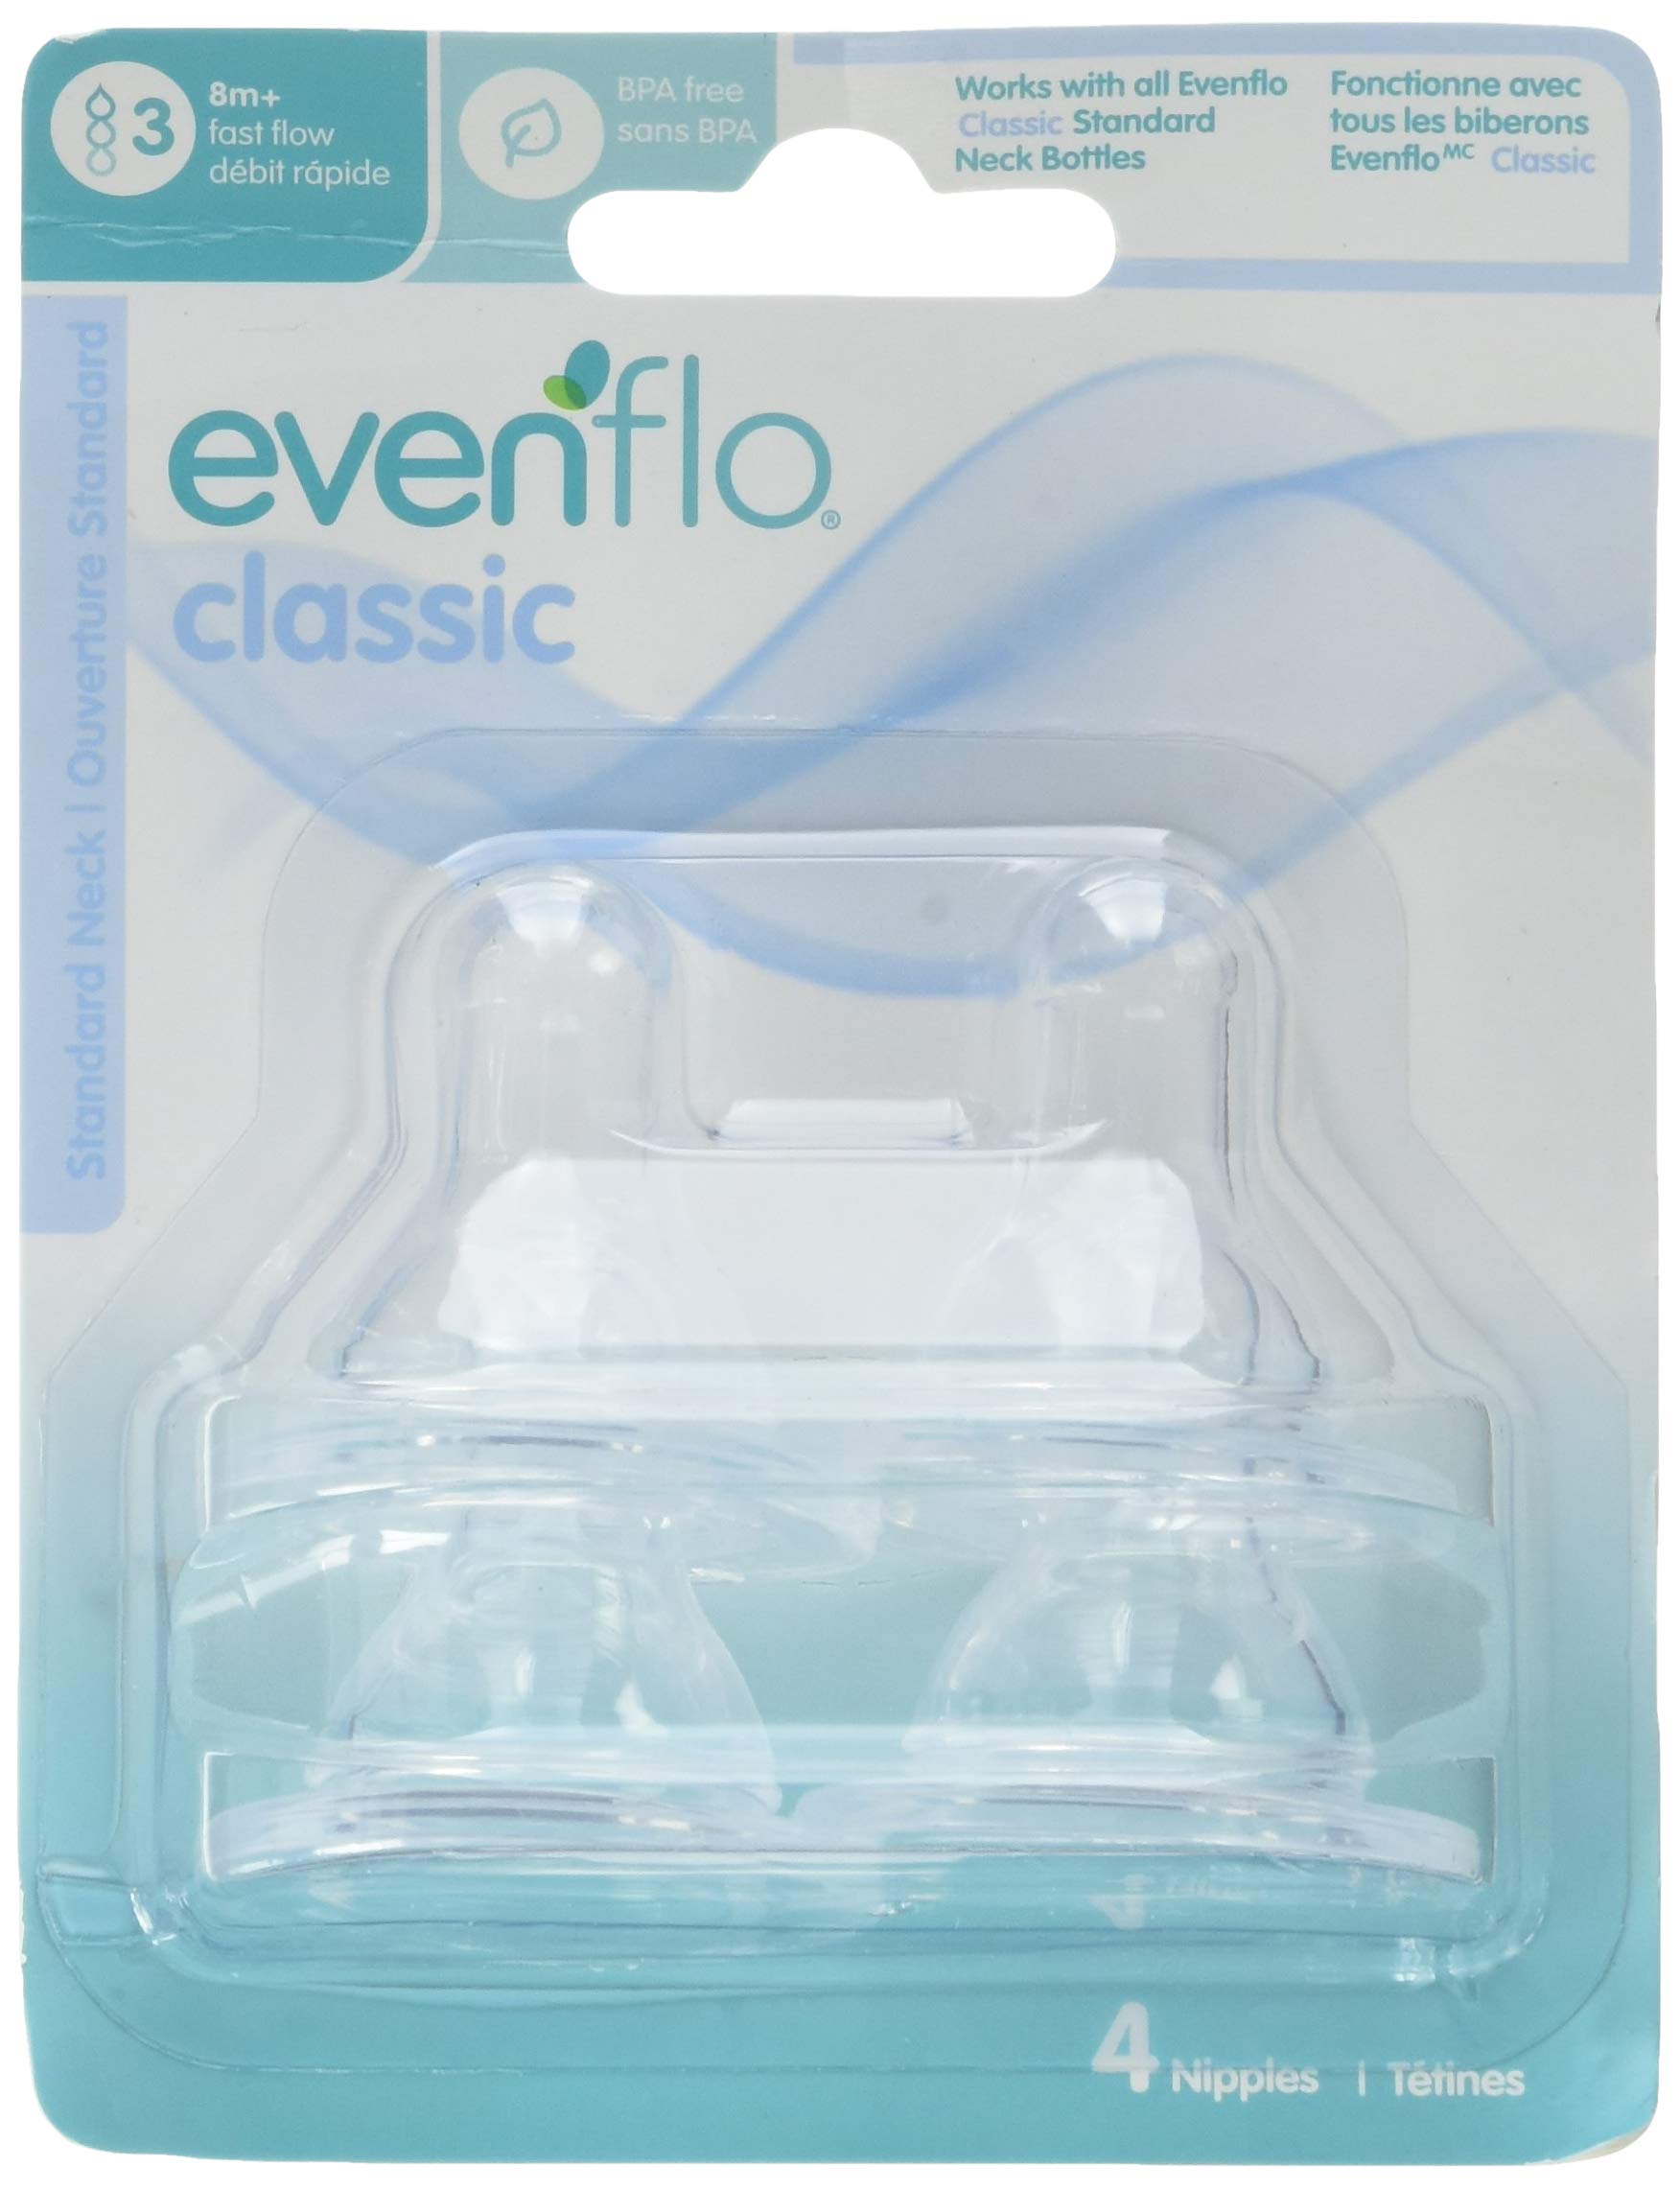 Evenflo Classic Bottle Nipples, 12 Count, Fast Flow by Evenflo